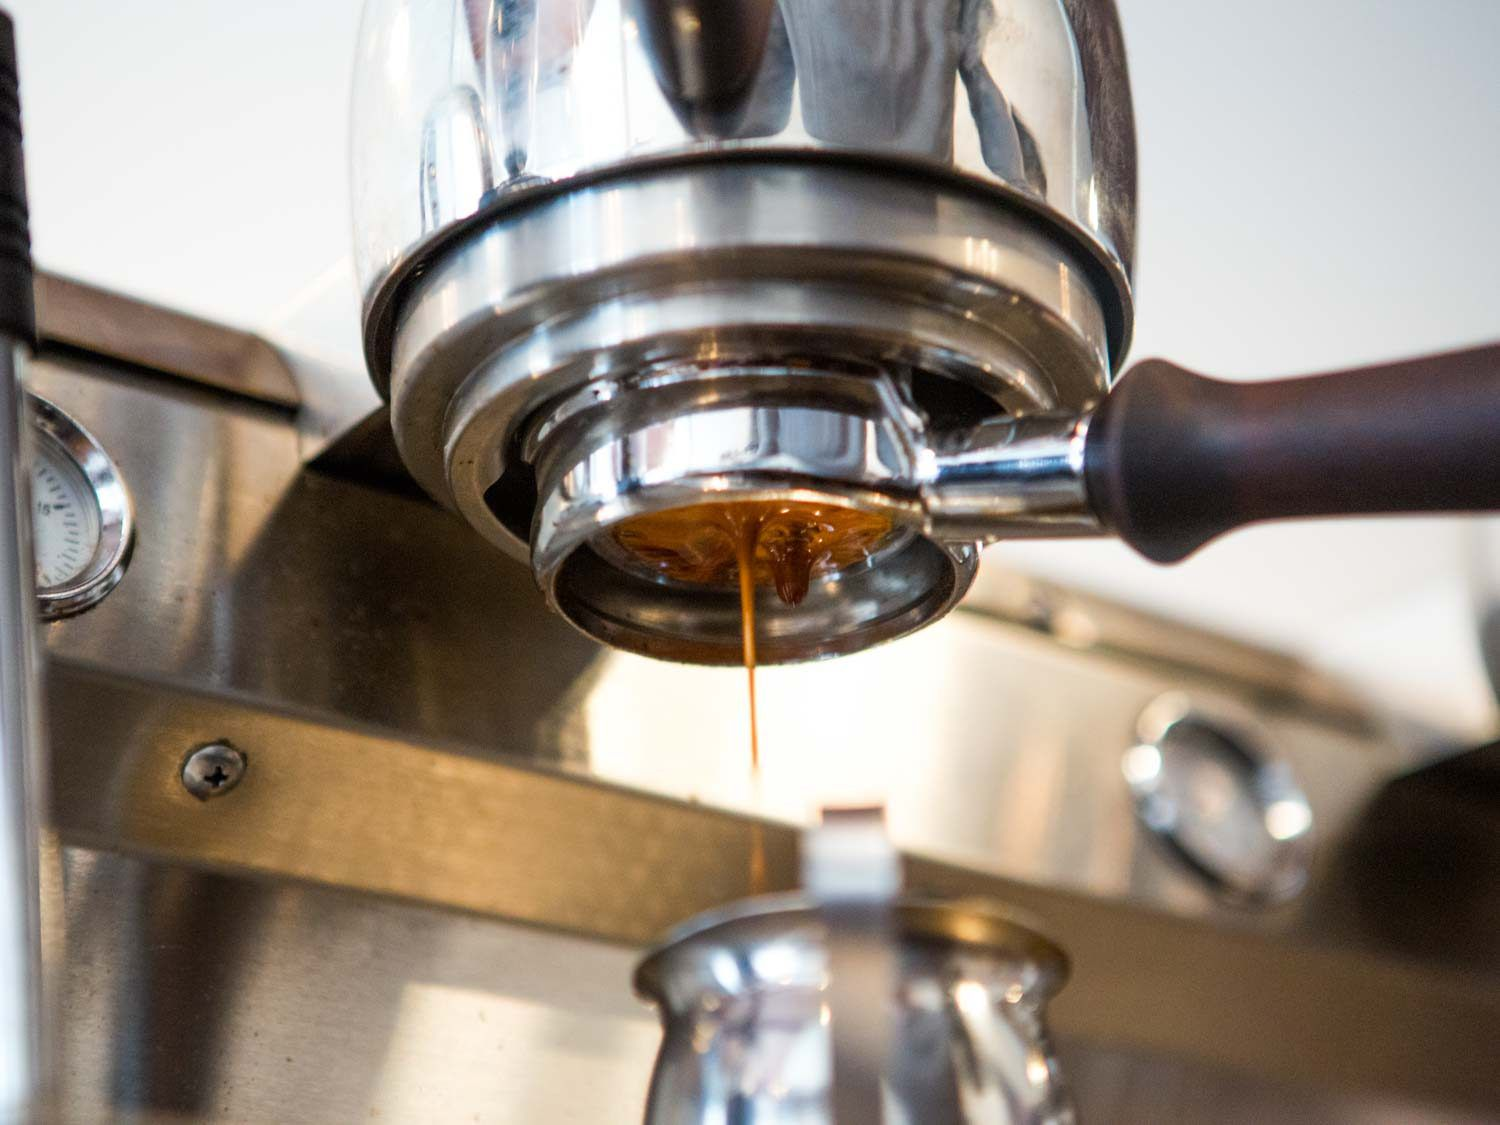 Espresso pours from the machine's portafilter into a small pitcher